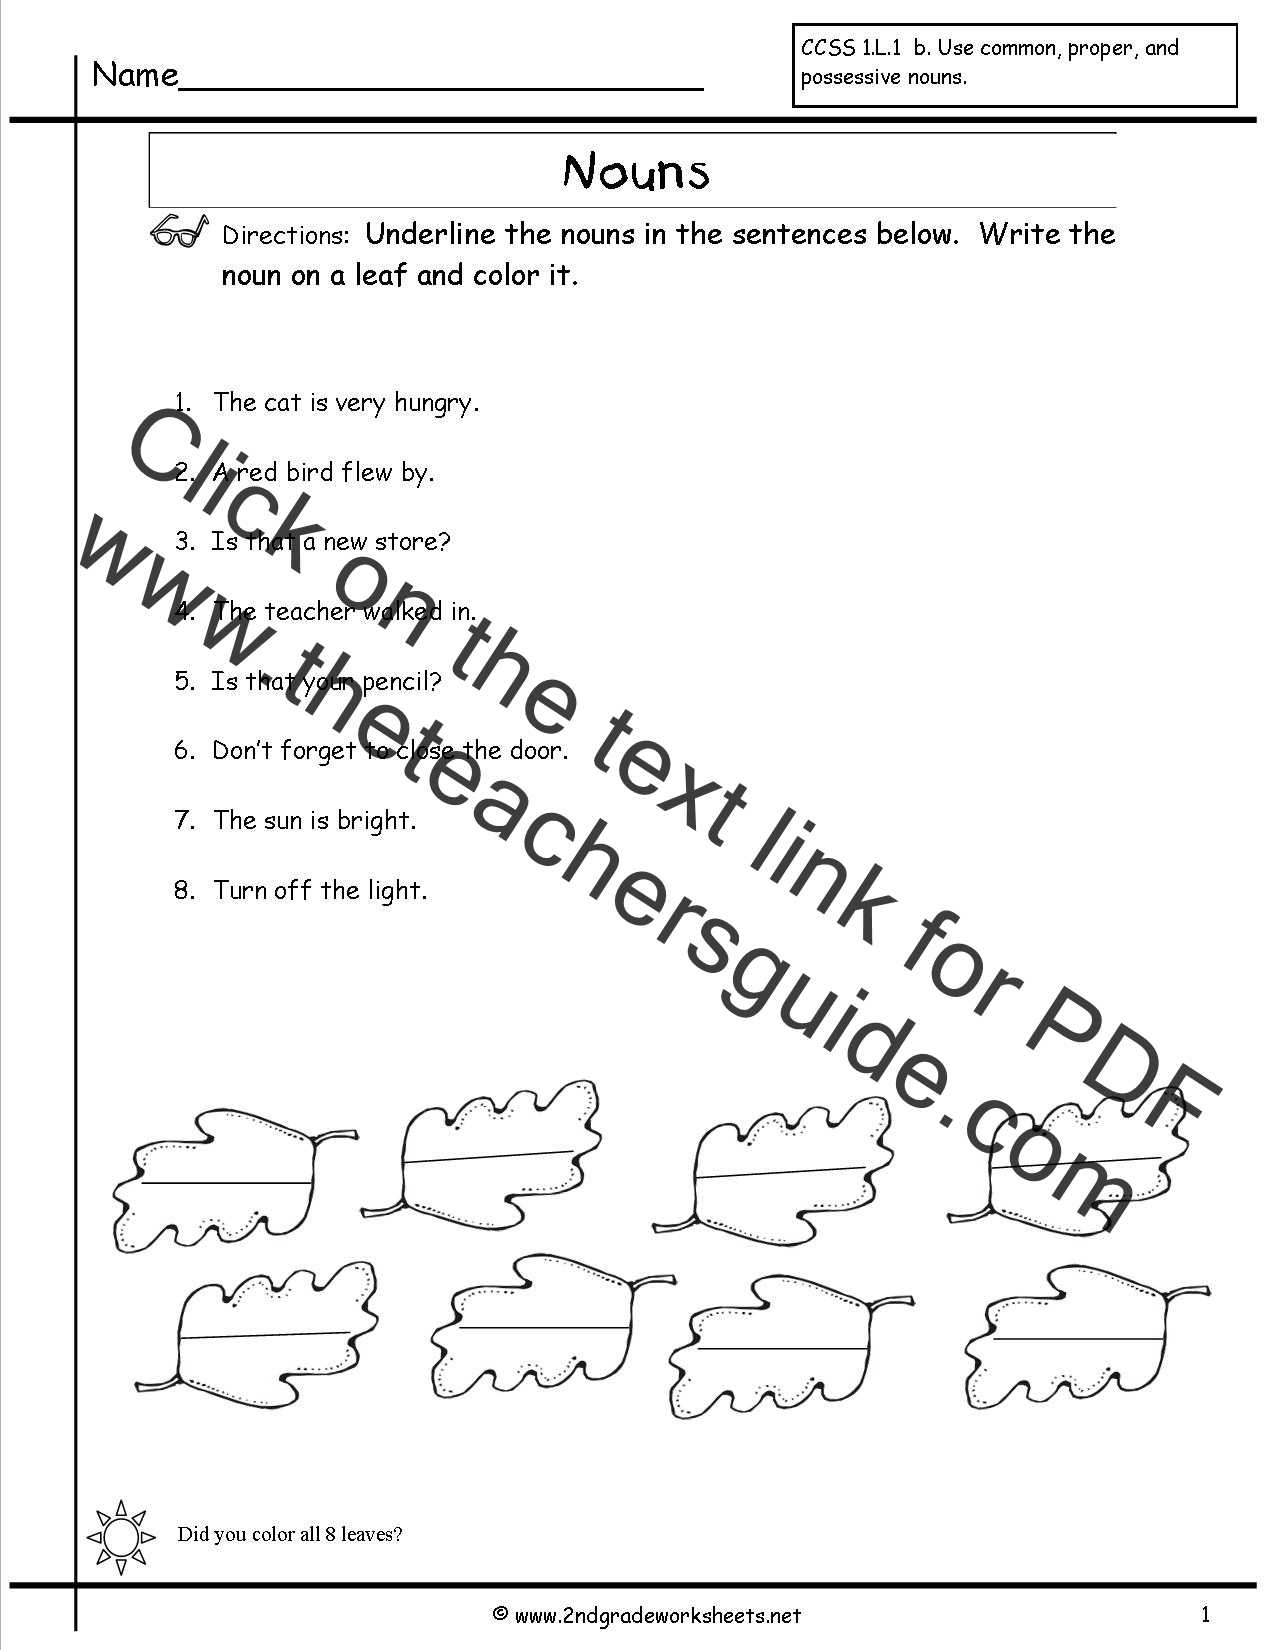 Worksheet Identifying Nouns nouns worksheets and printouts worksheet